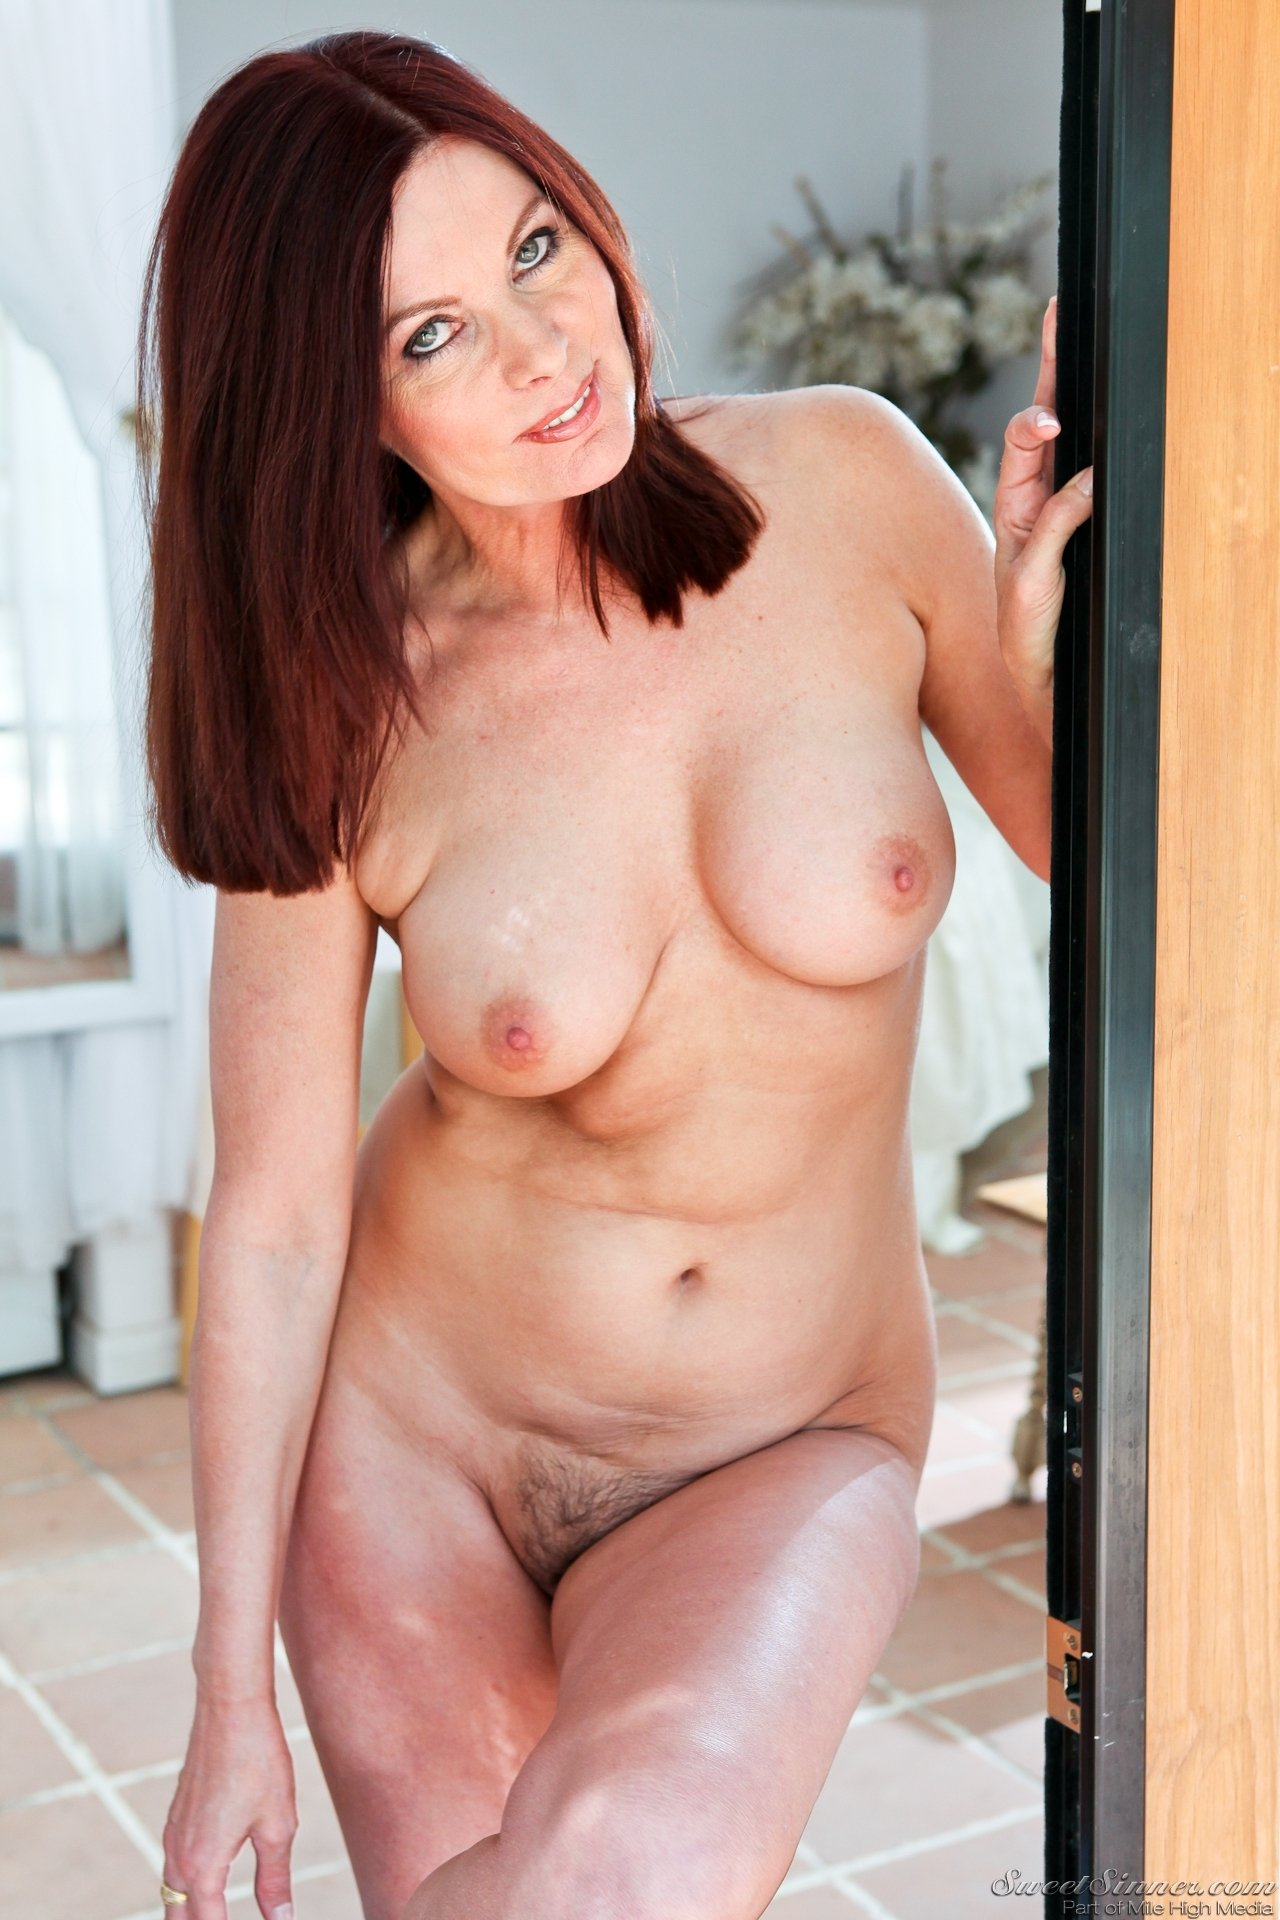 Magdalene St Michaels nude pics, images and galleries